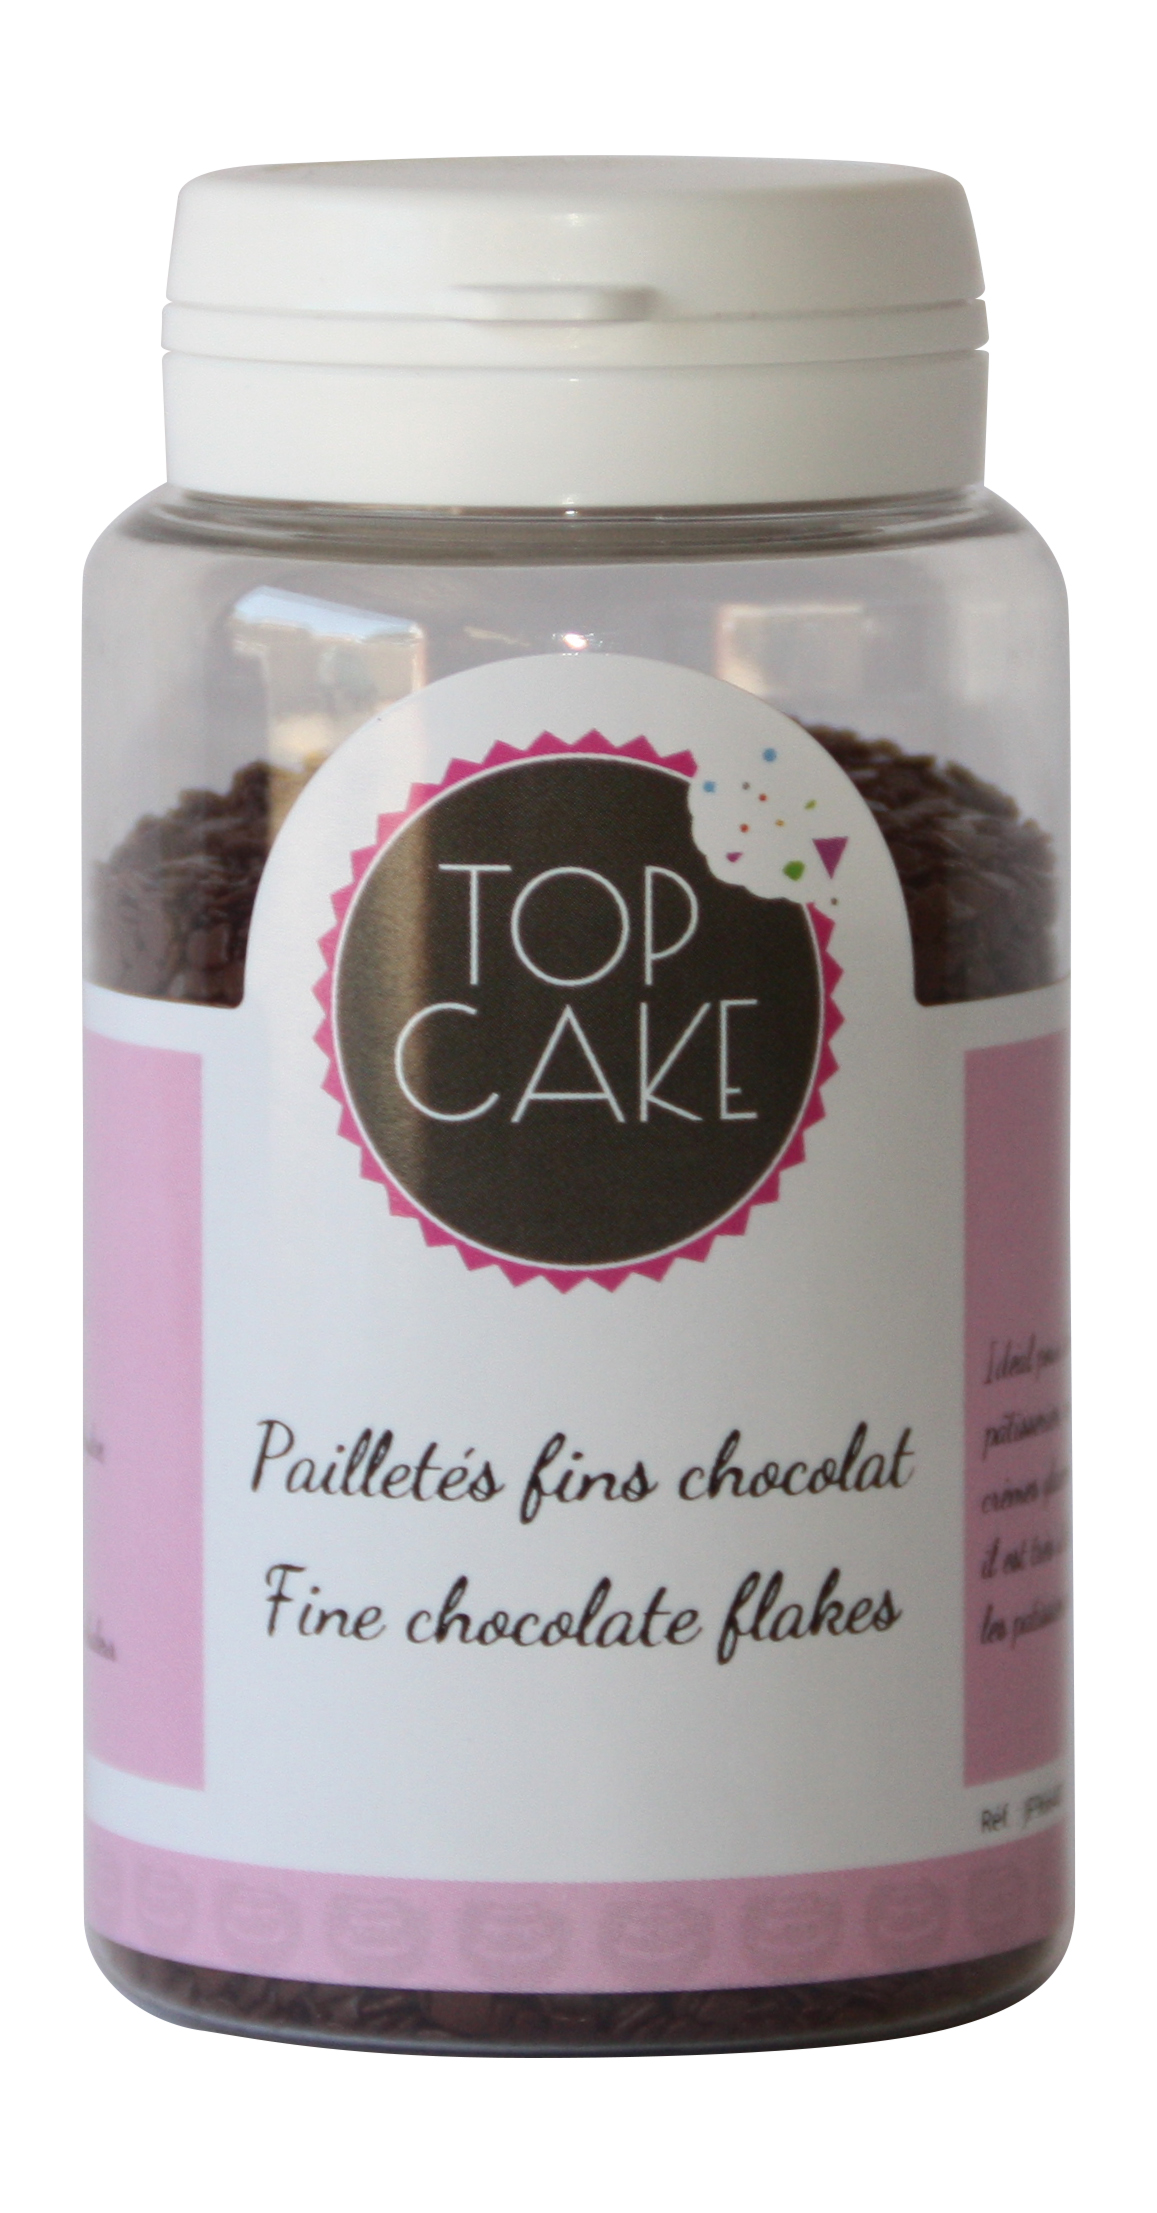 Thin chocolate flakes barry x 100 g - TopCake